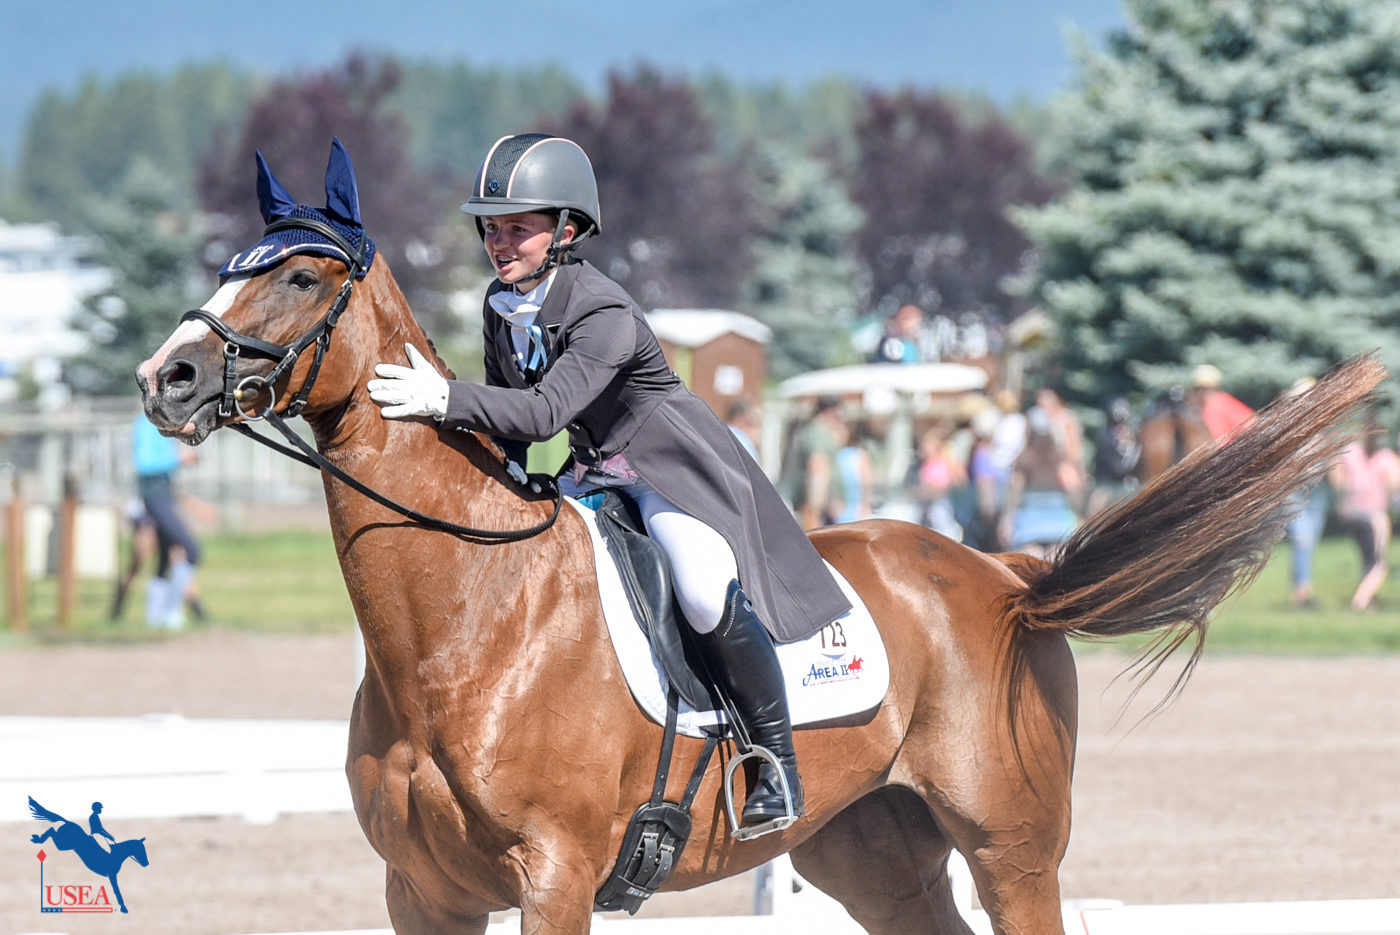 Fernhill Fierce added her own salute to conclude her dressage test. USEA/Leslie Mintz Photo.